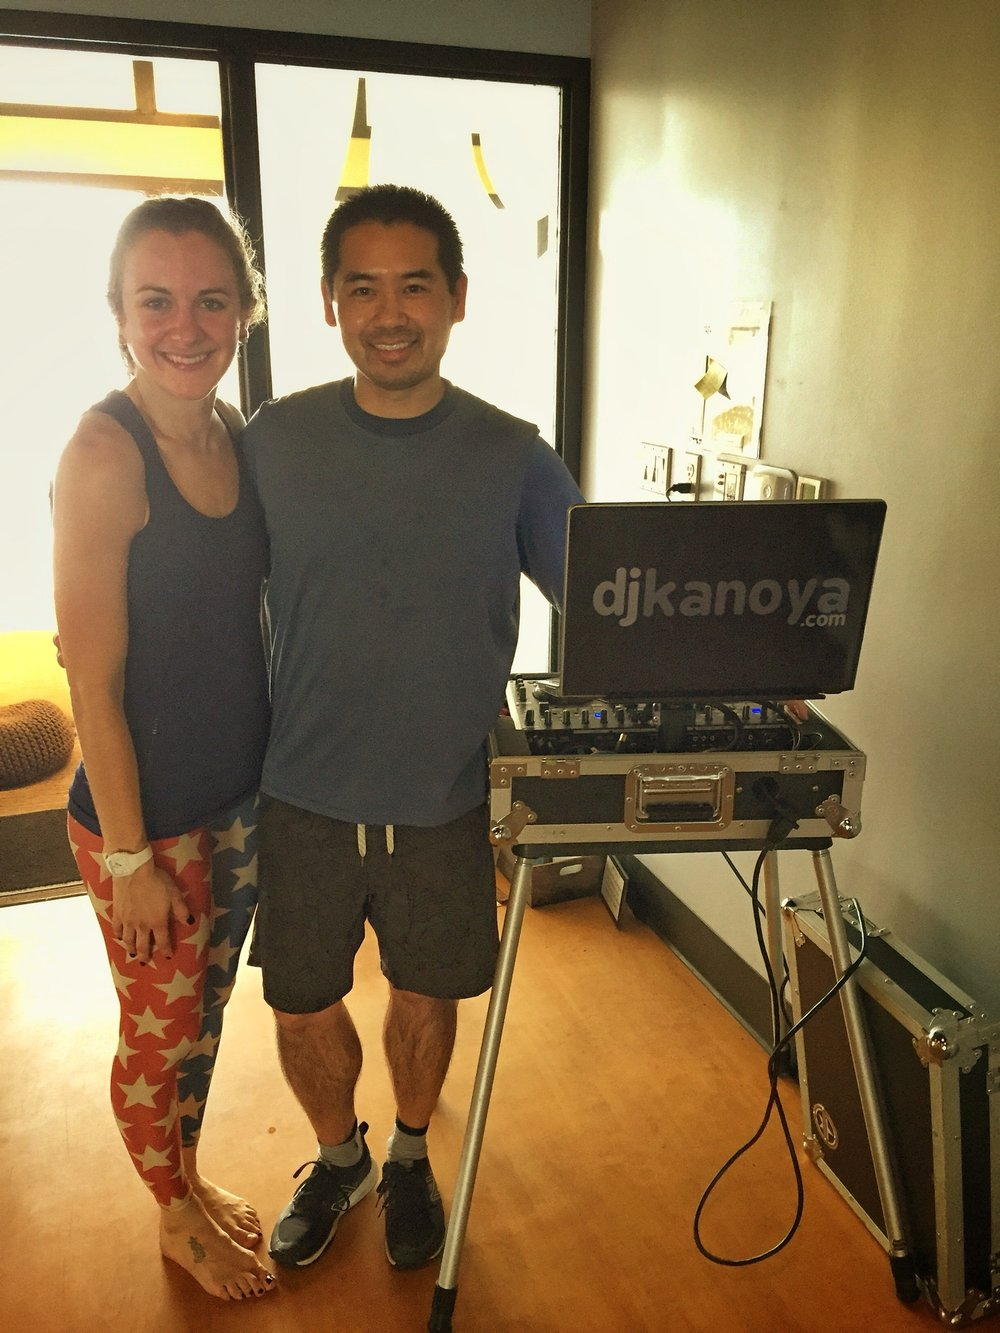 San Diego yoga DJ, Justin Kanoya, with Corepower Yoga teacher, Amanda Mays after a live DJ'd yoga workout.